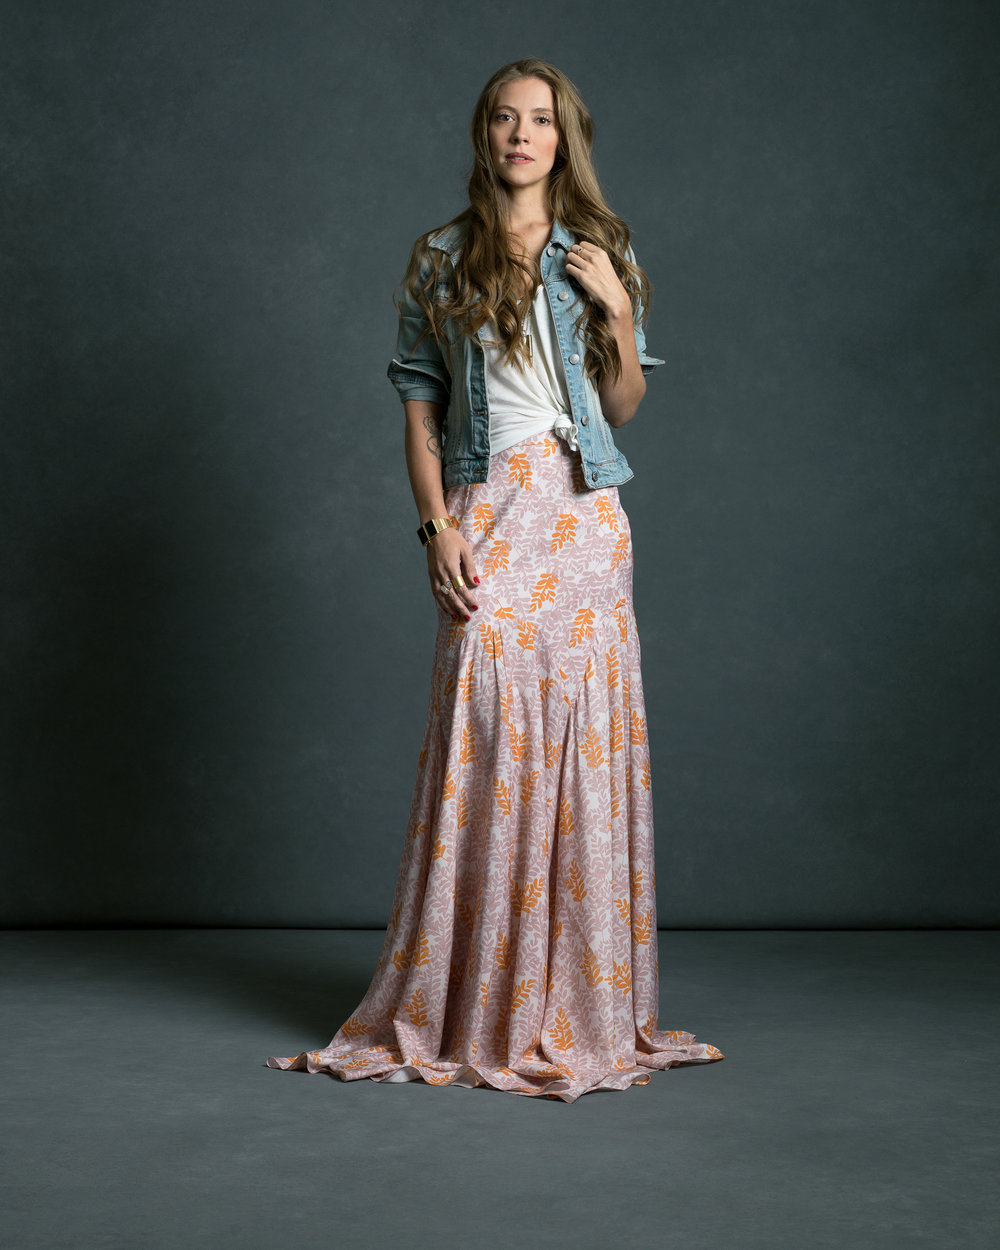 The Behind The Scenes Woman - Gabriela García-Galont in the Verbena Skirt.